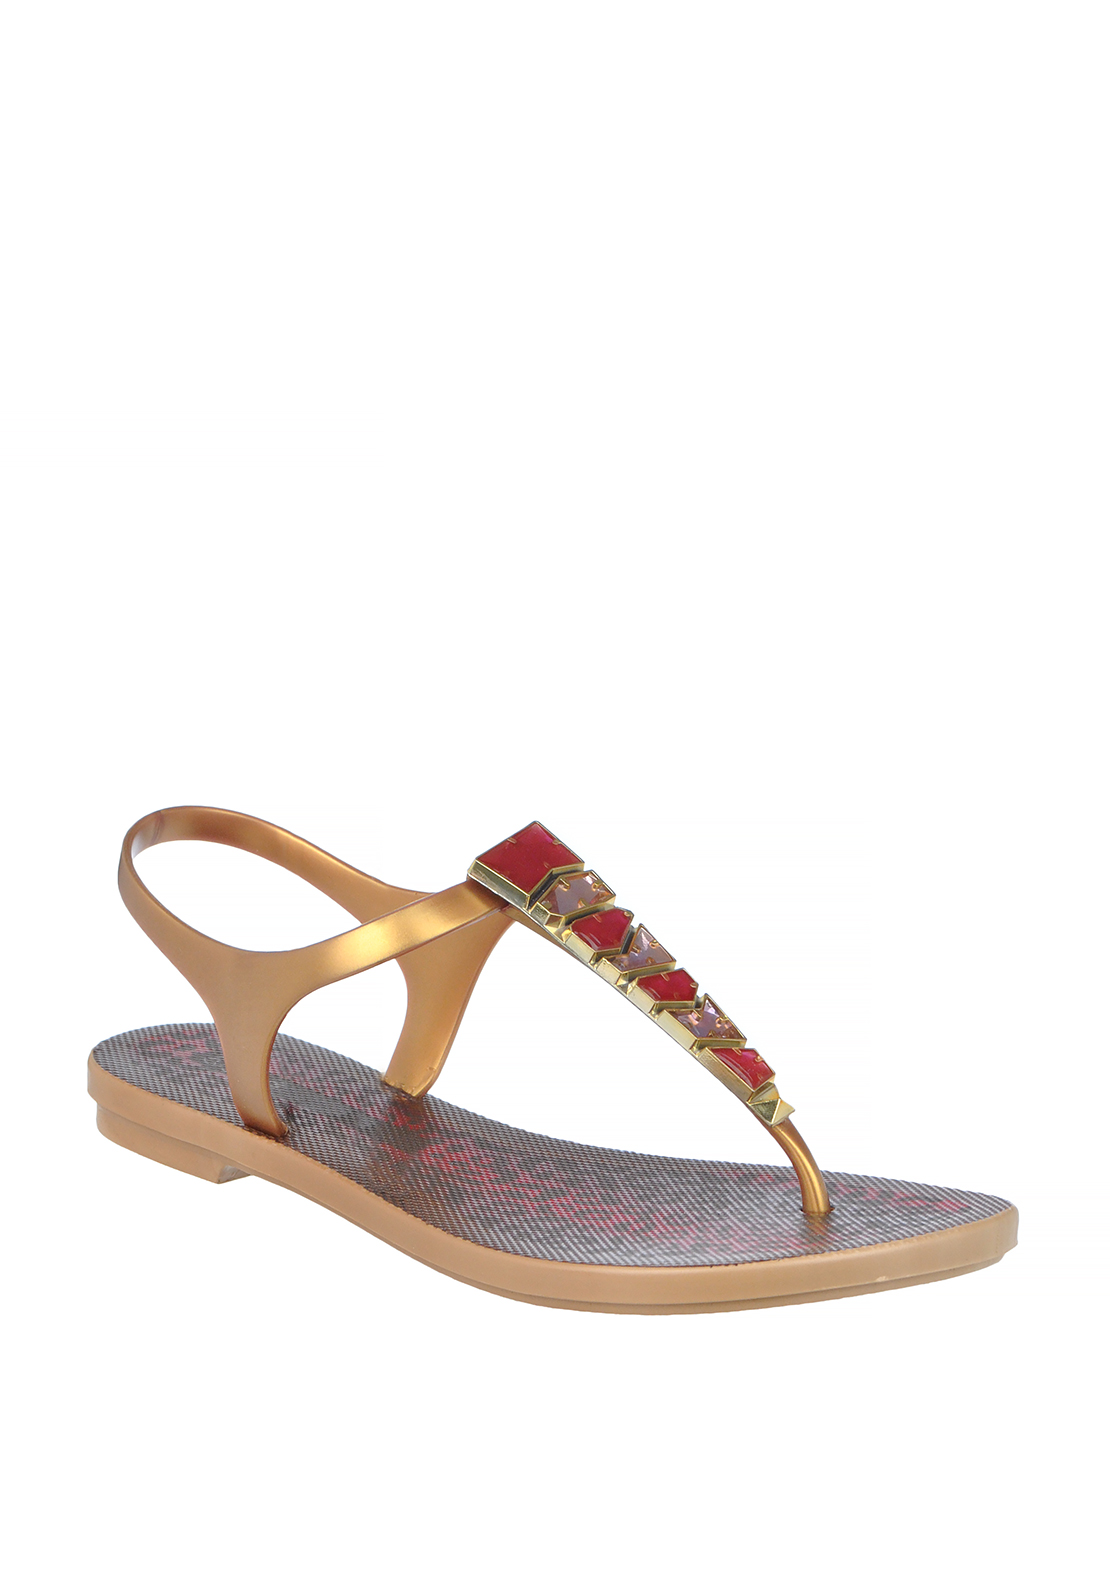 Ipanema Gem Embellished Toe Thong Sandals, Gold